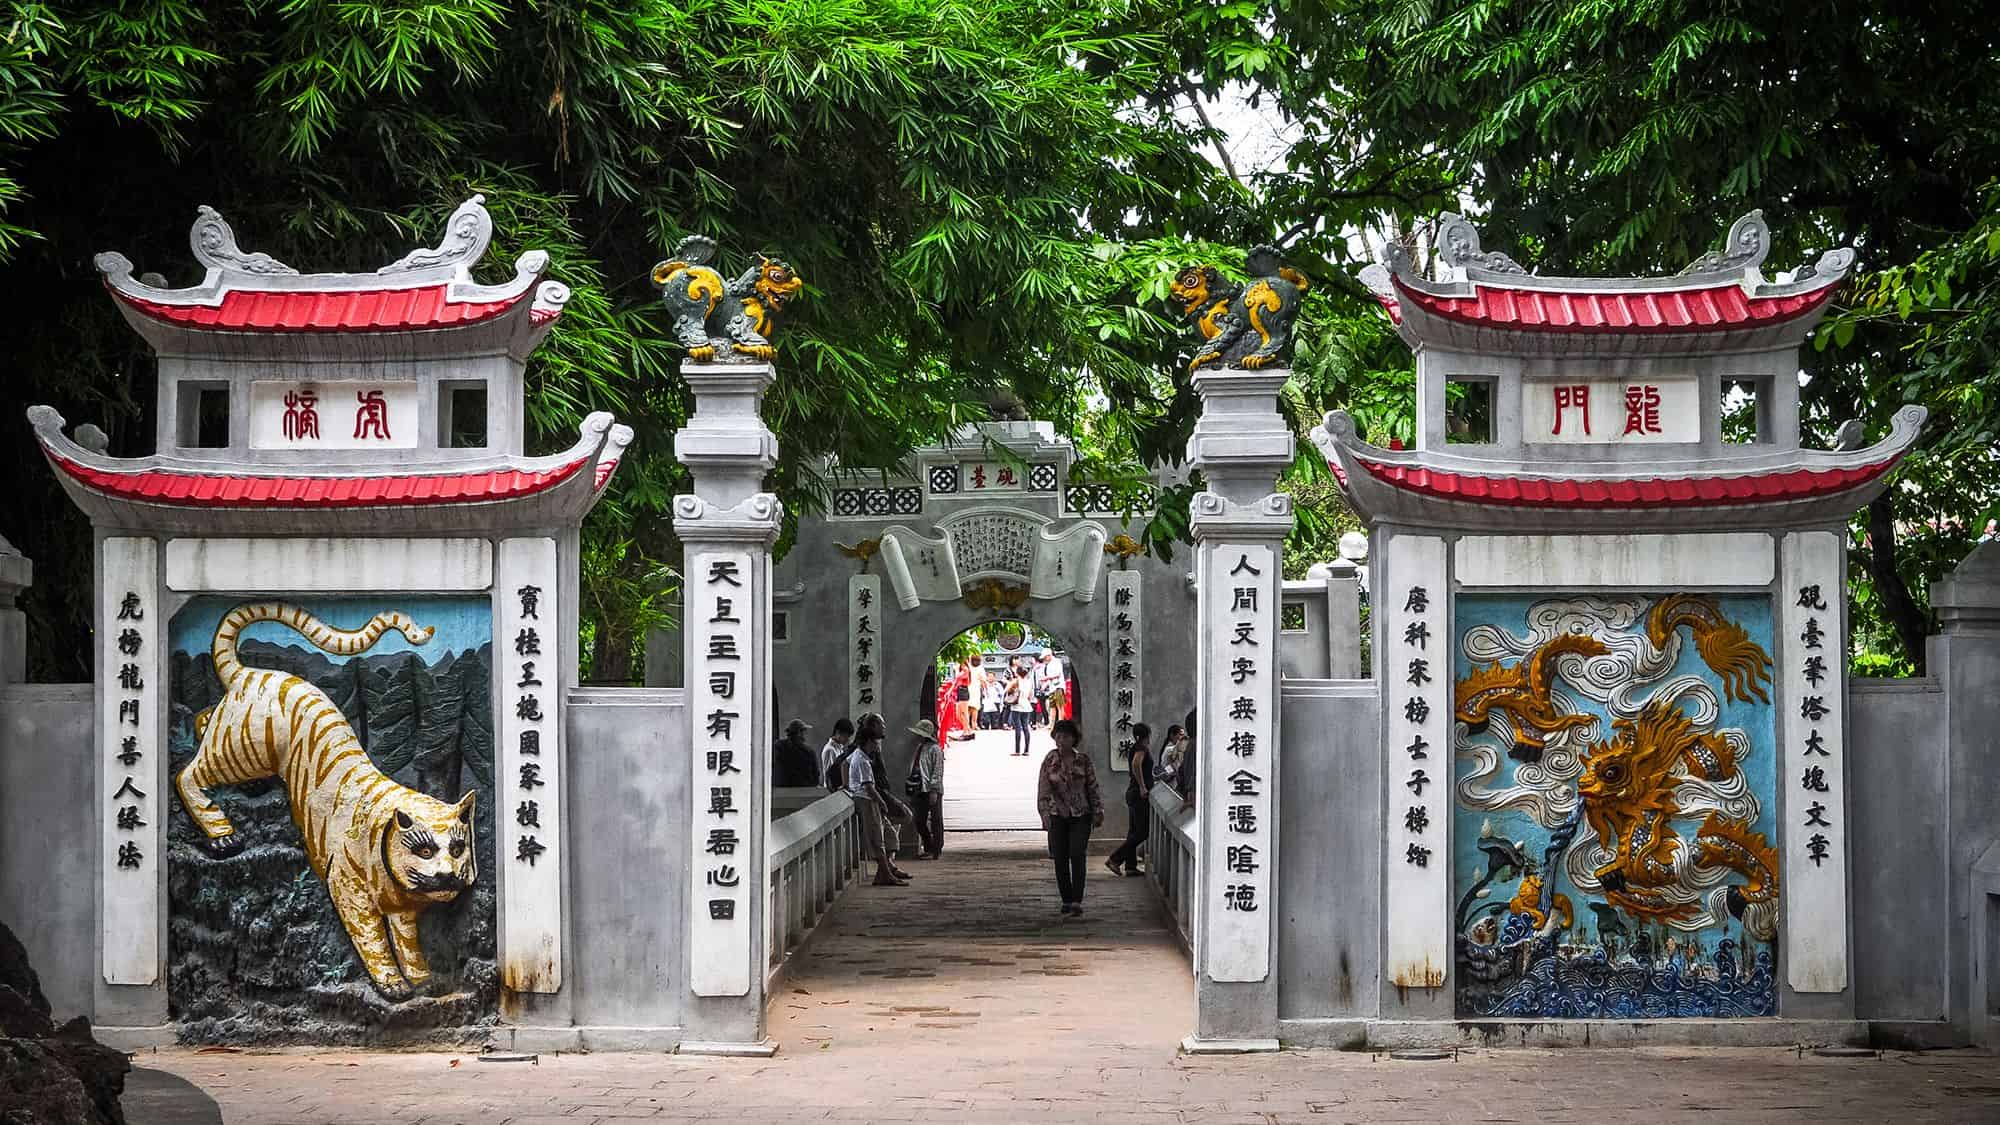 Visit Ngoc Son temple in the first morning during 2 days in Hanoi